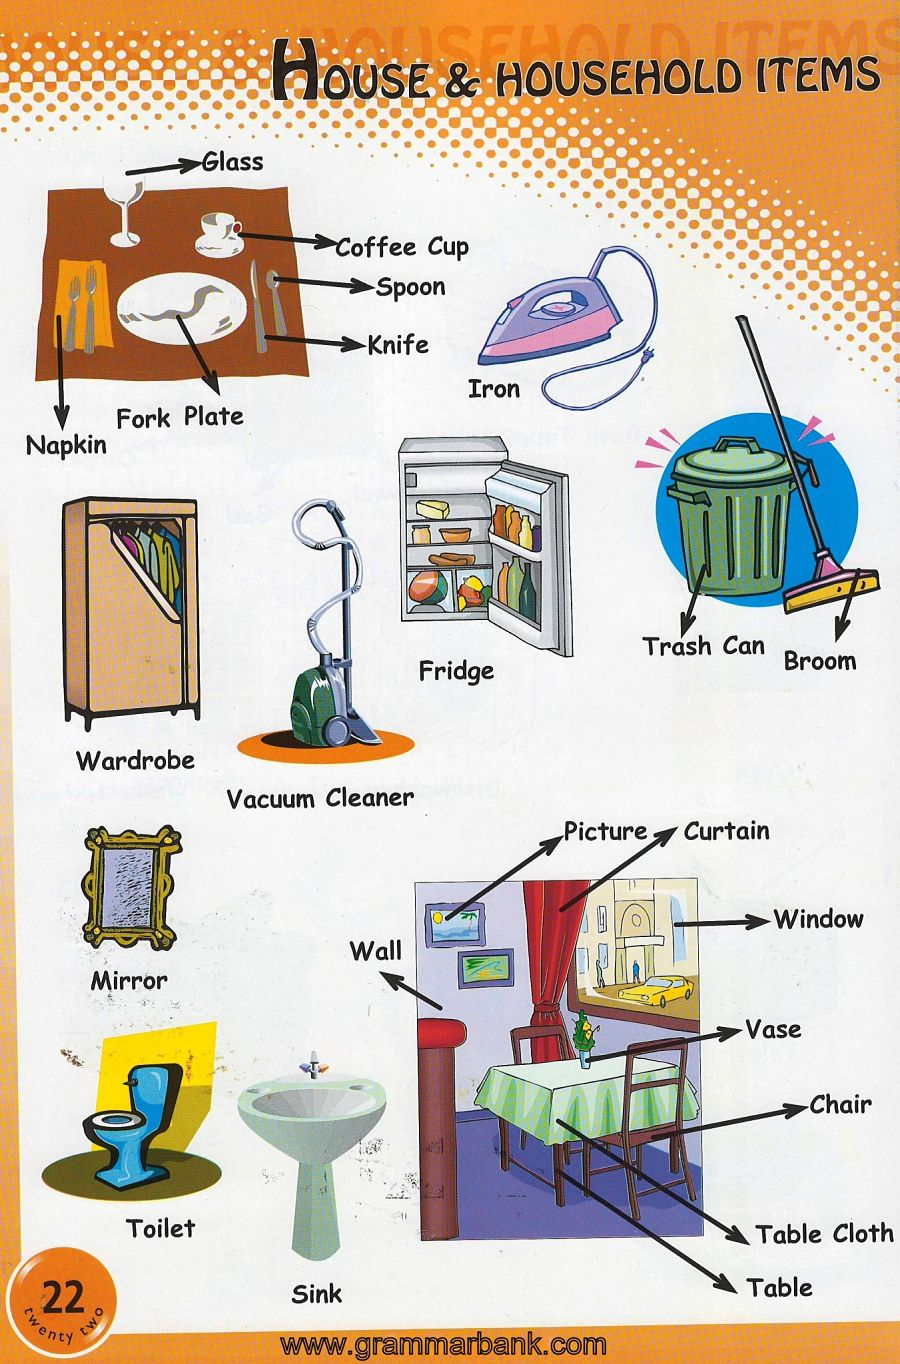 Household Items 12